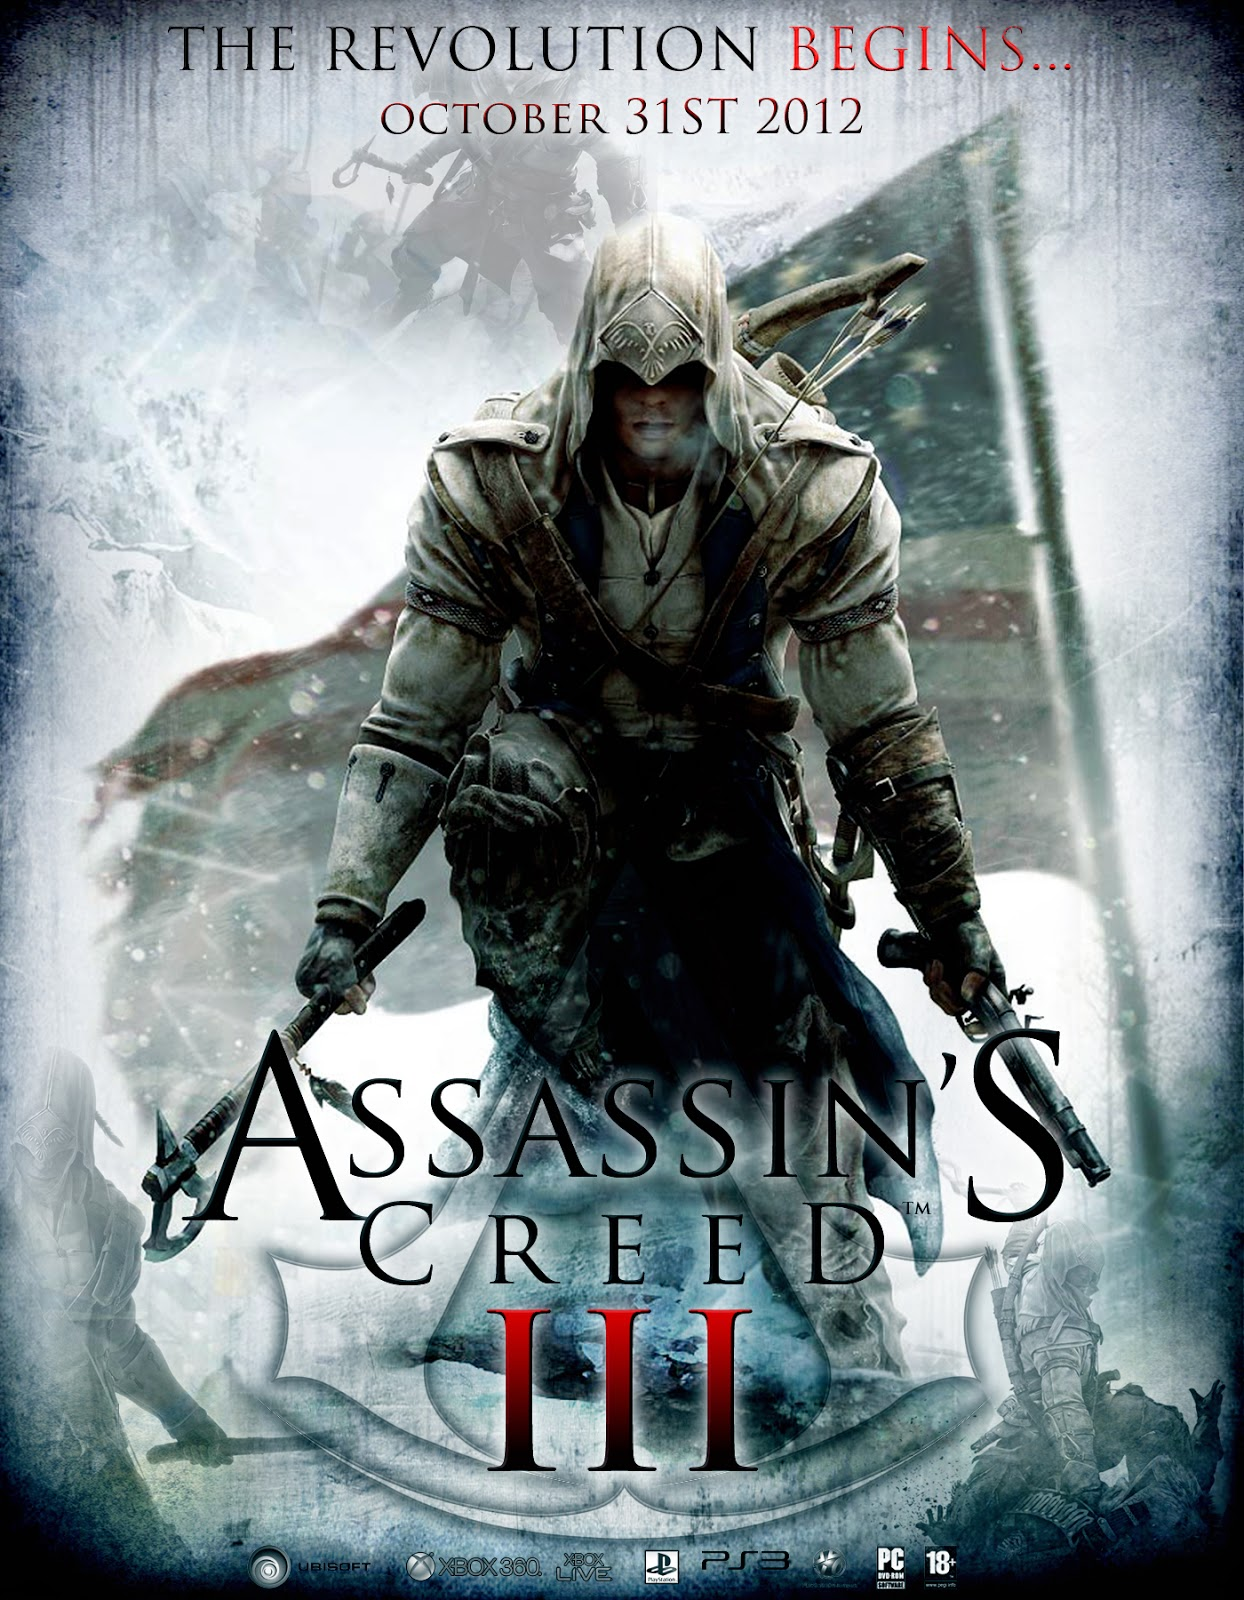 assassins creed 3 poster analysis unit 18 advertising production. Black Bedroom Furniture Sets. Home Design Ideas